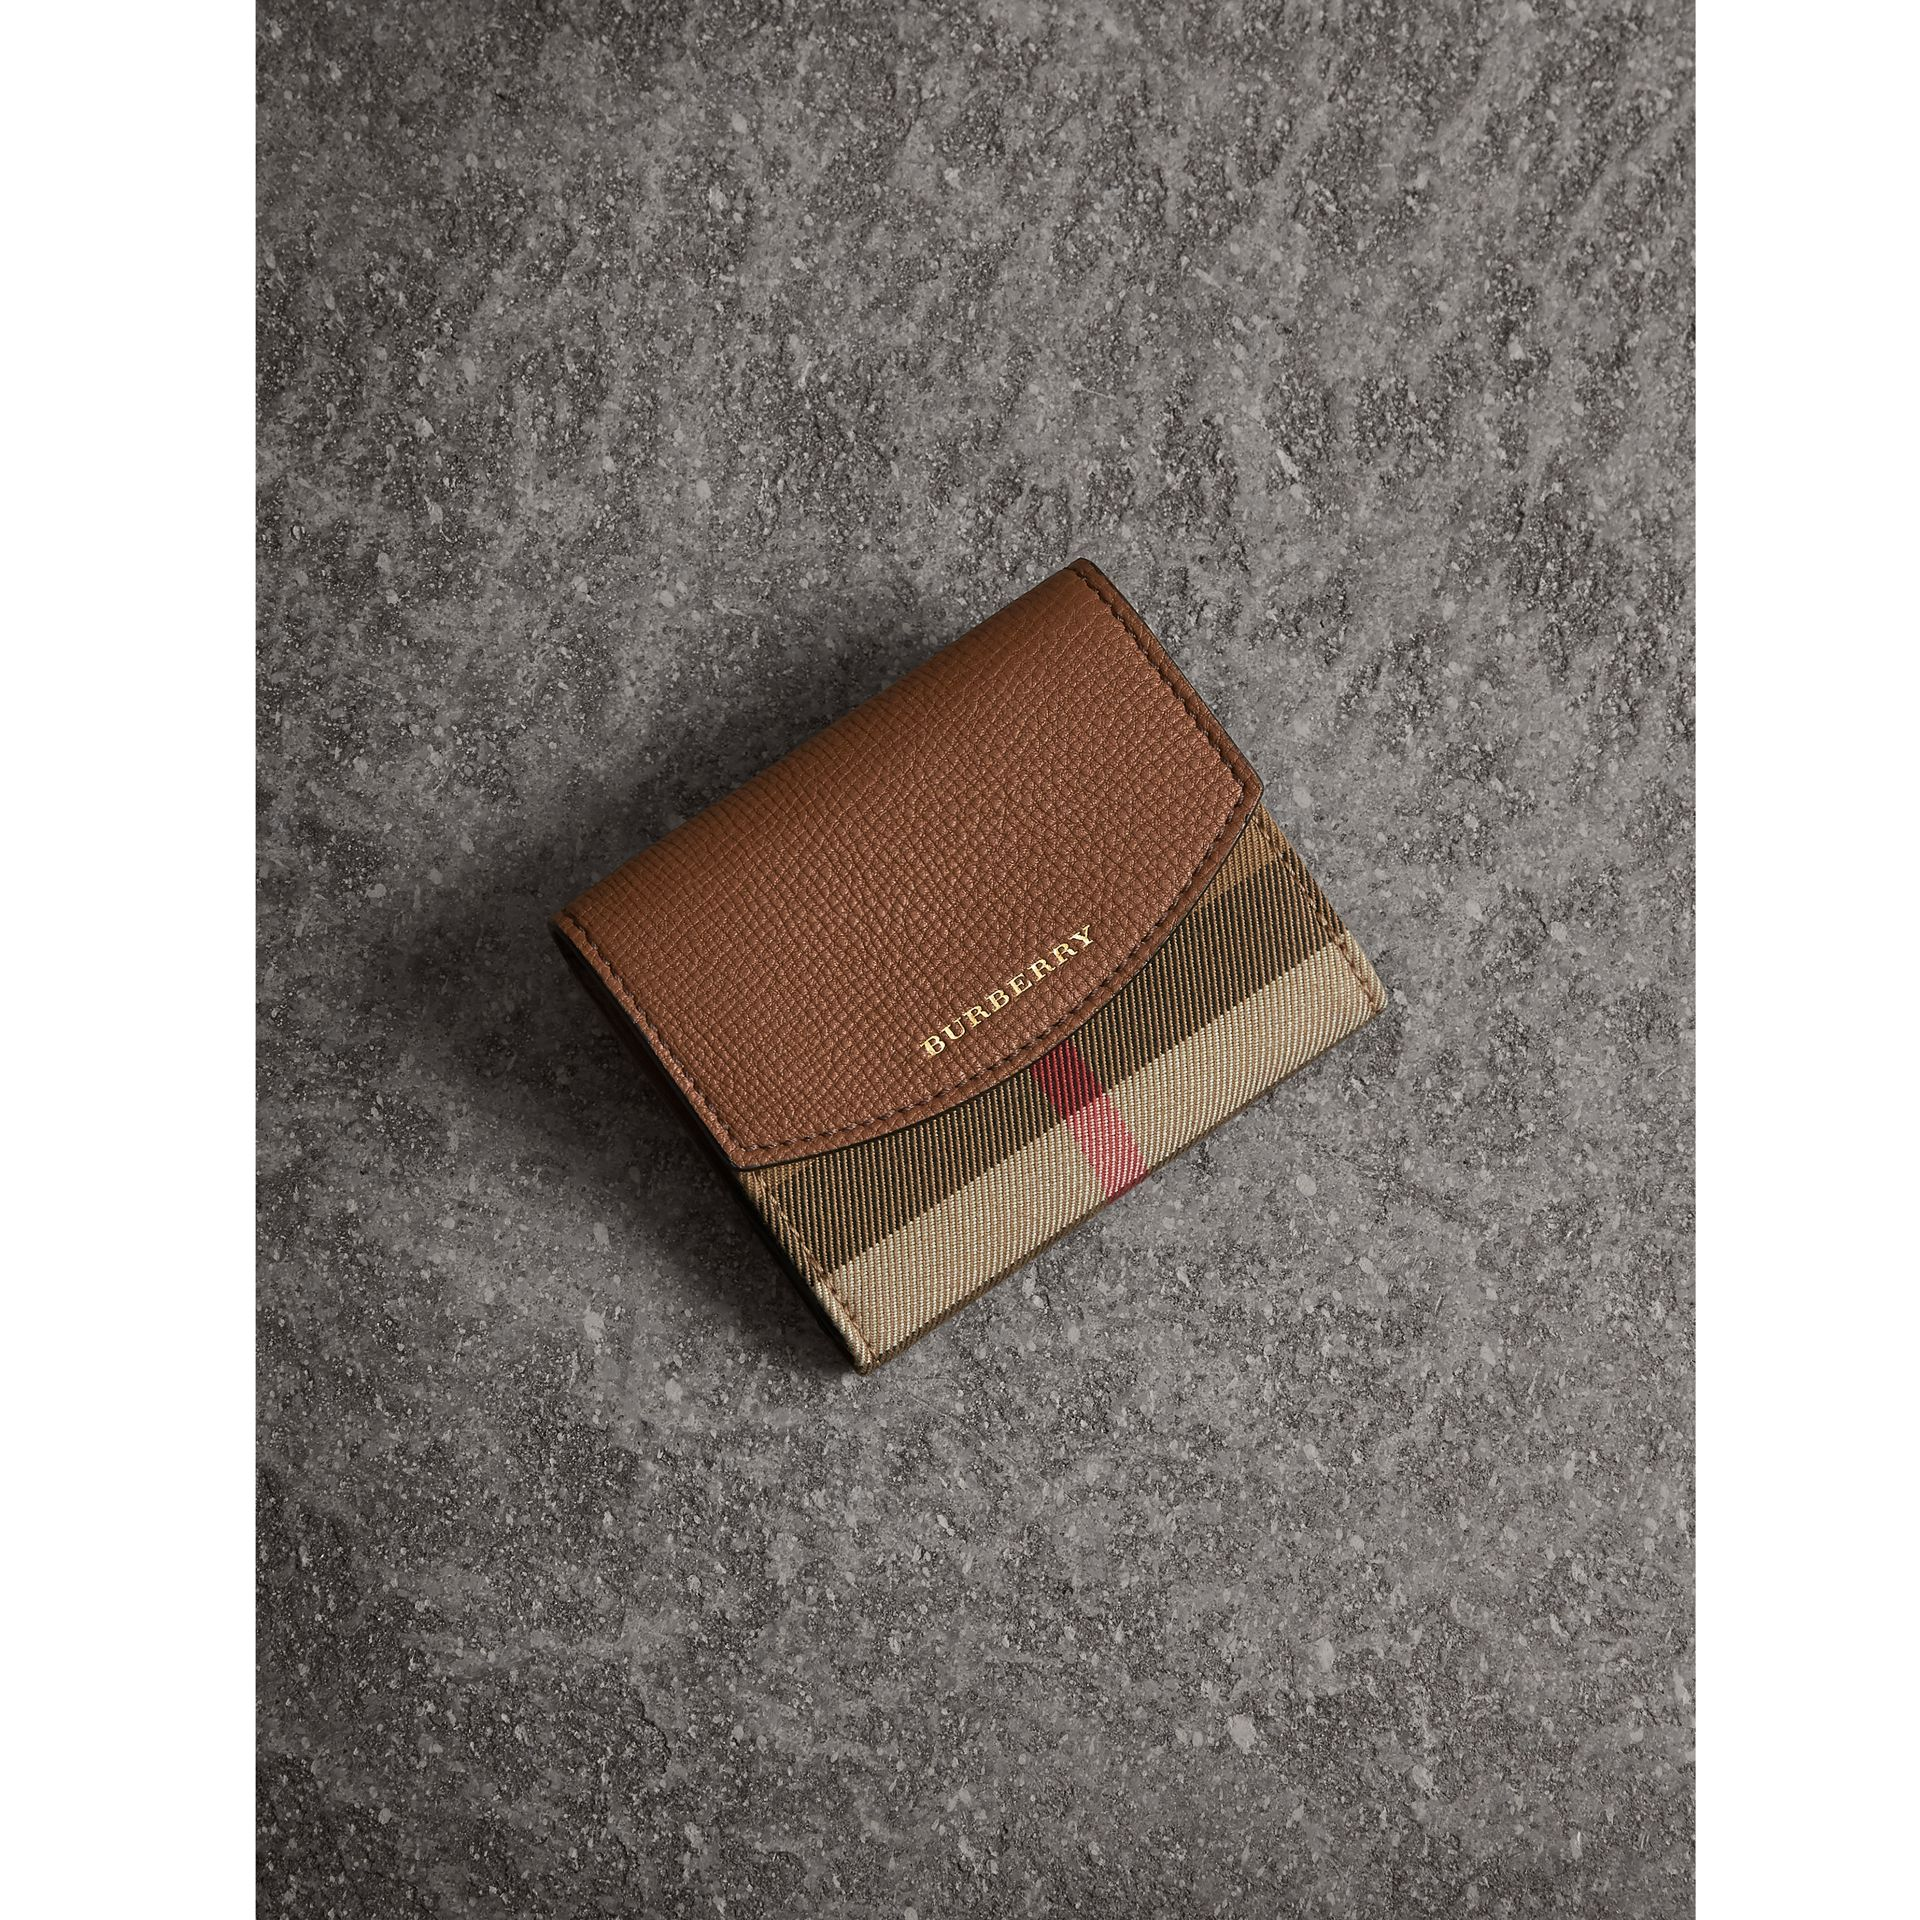 House Check and Leather Wallet in Tan - Women | Burberry - gallery image 1